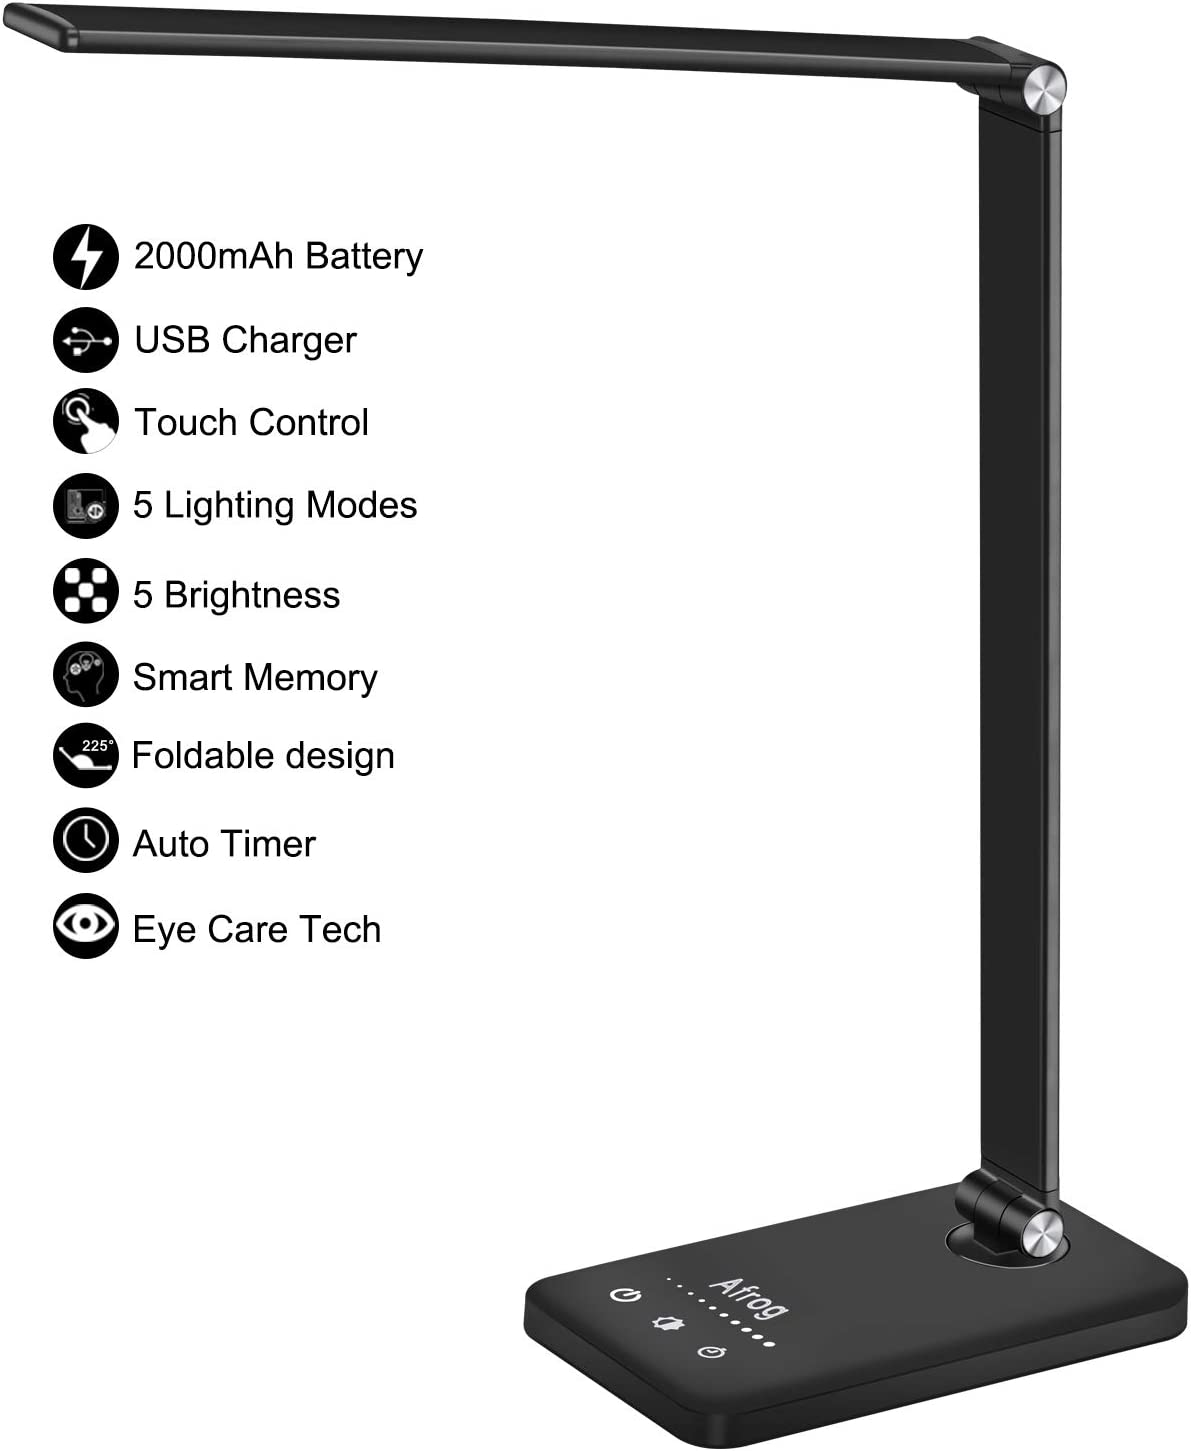 Multifunctional LED Desk Lamp with 2000mAh Battery, USB Charging Port, 5 Lighting Modes,5 Brightness Levels, Sensitive Control, 30/60 min Auto Timer, Eye-Caring Office Lamp with Adapter